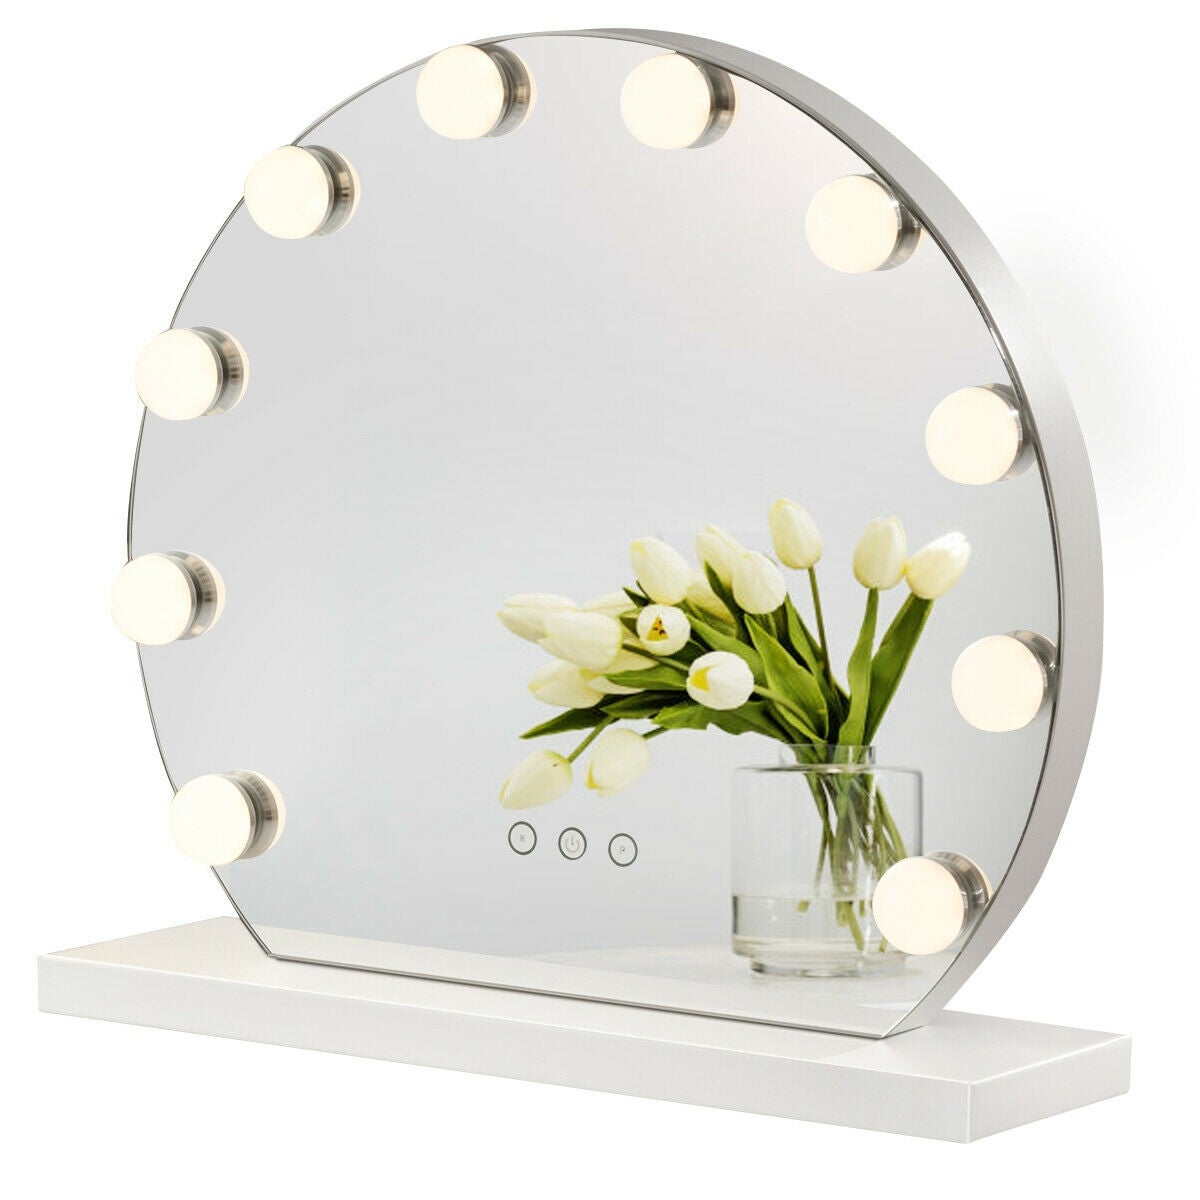 Costway Makeup Vanity Mirror With Light Hollywood Style Mirror 3 White Overstock 28255434